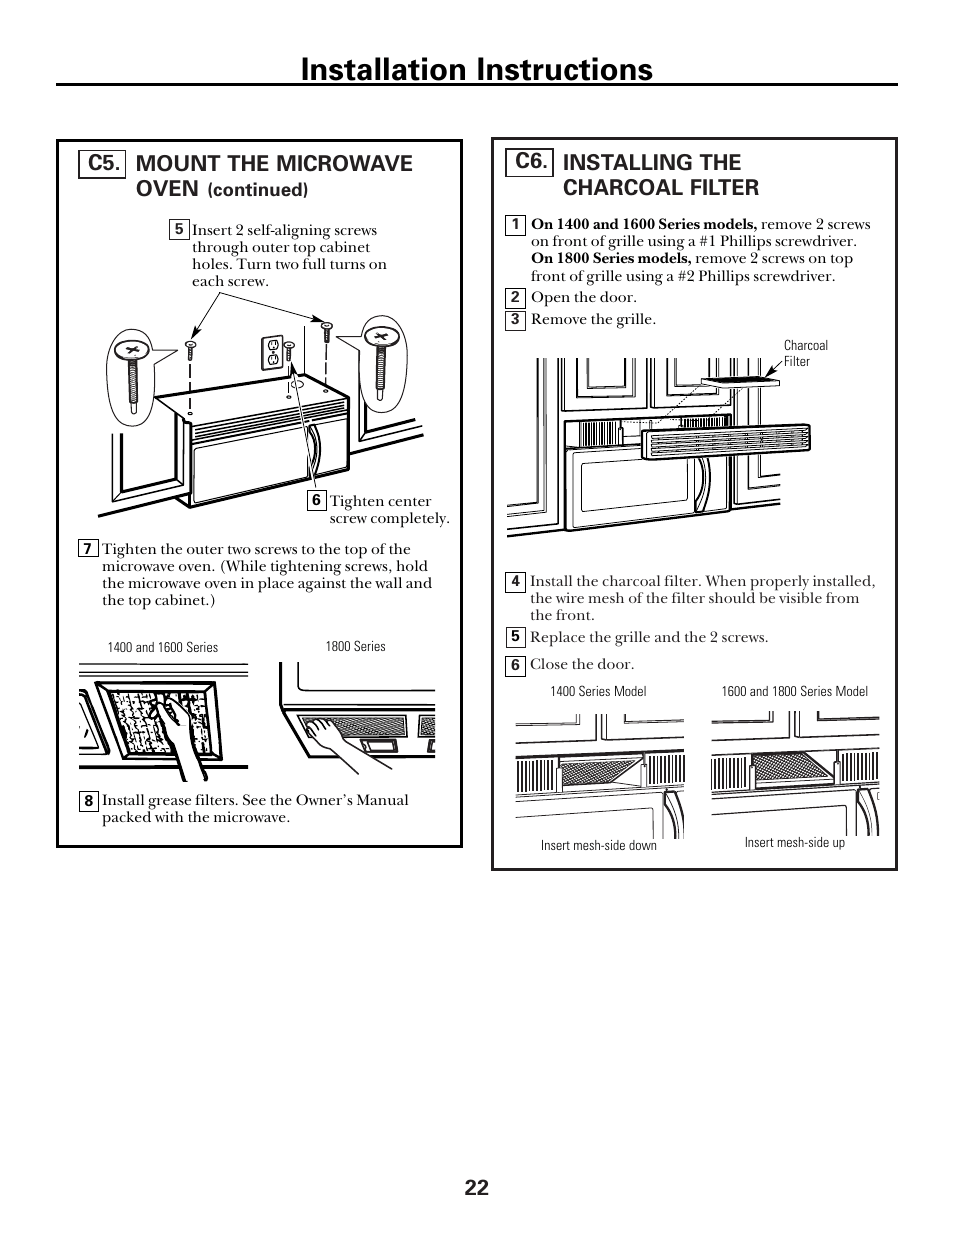 medium resolution of installing the charcoal filter installation instructions ge spacemaker xl1800 user manual page 22